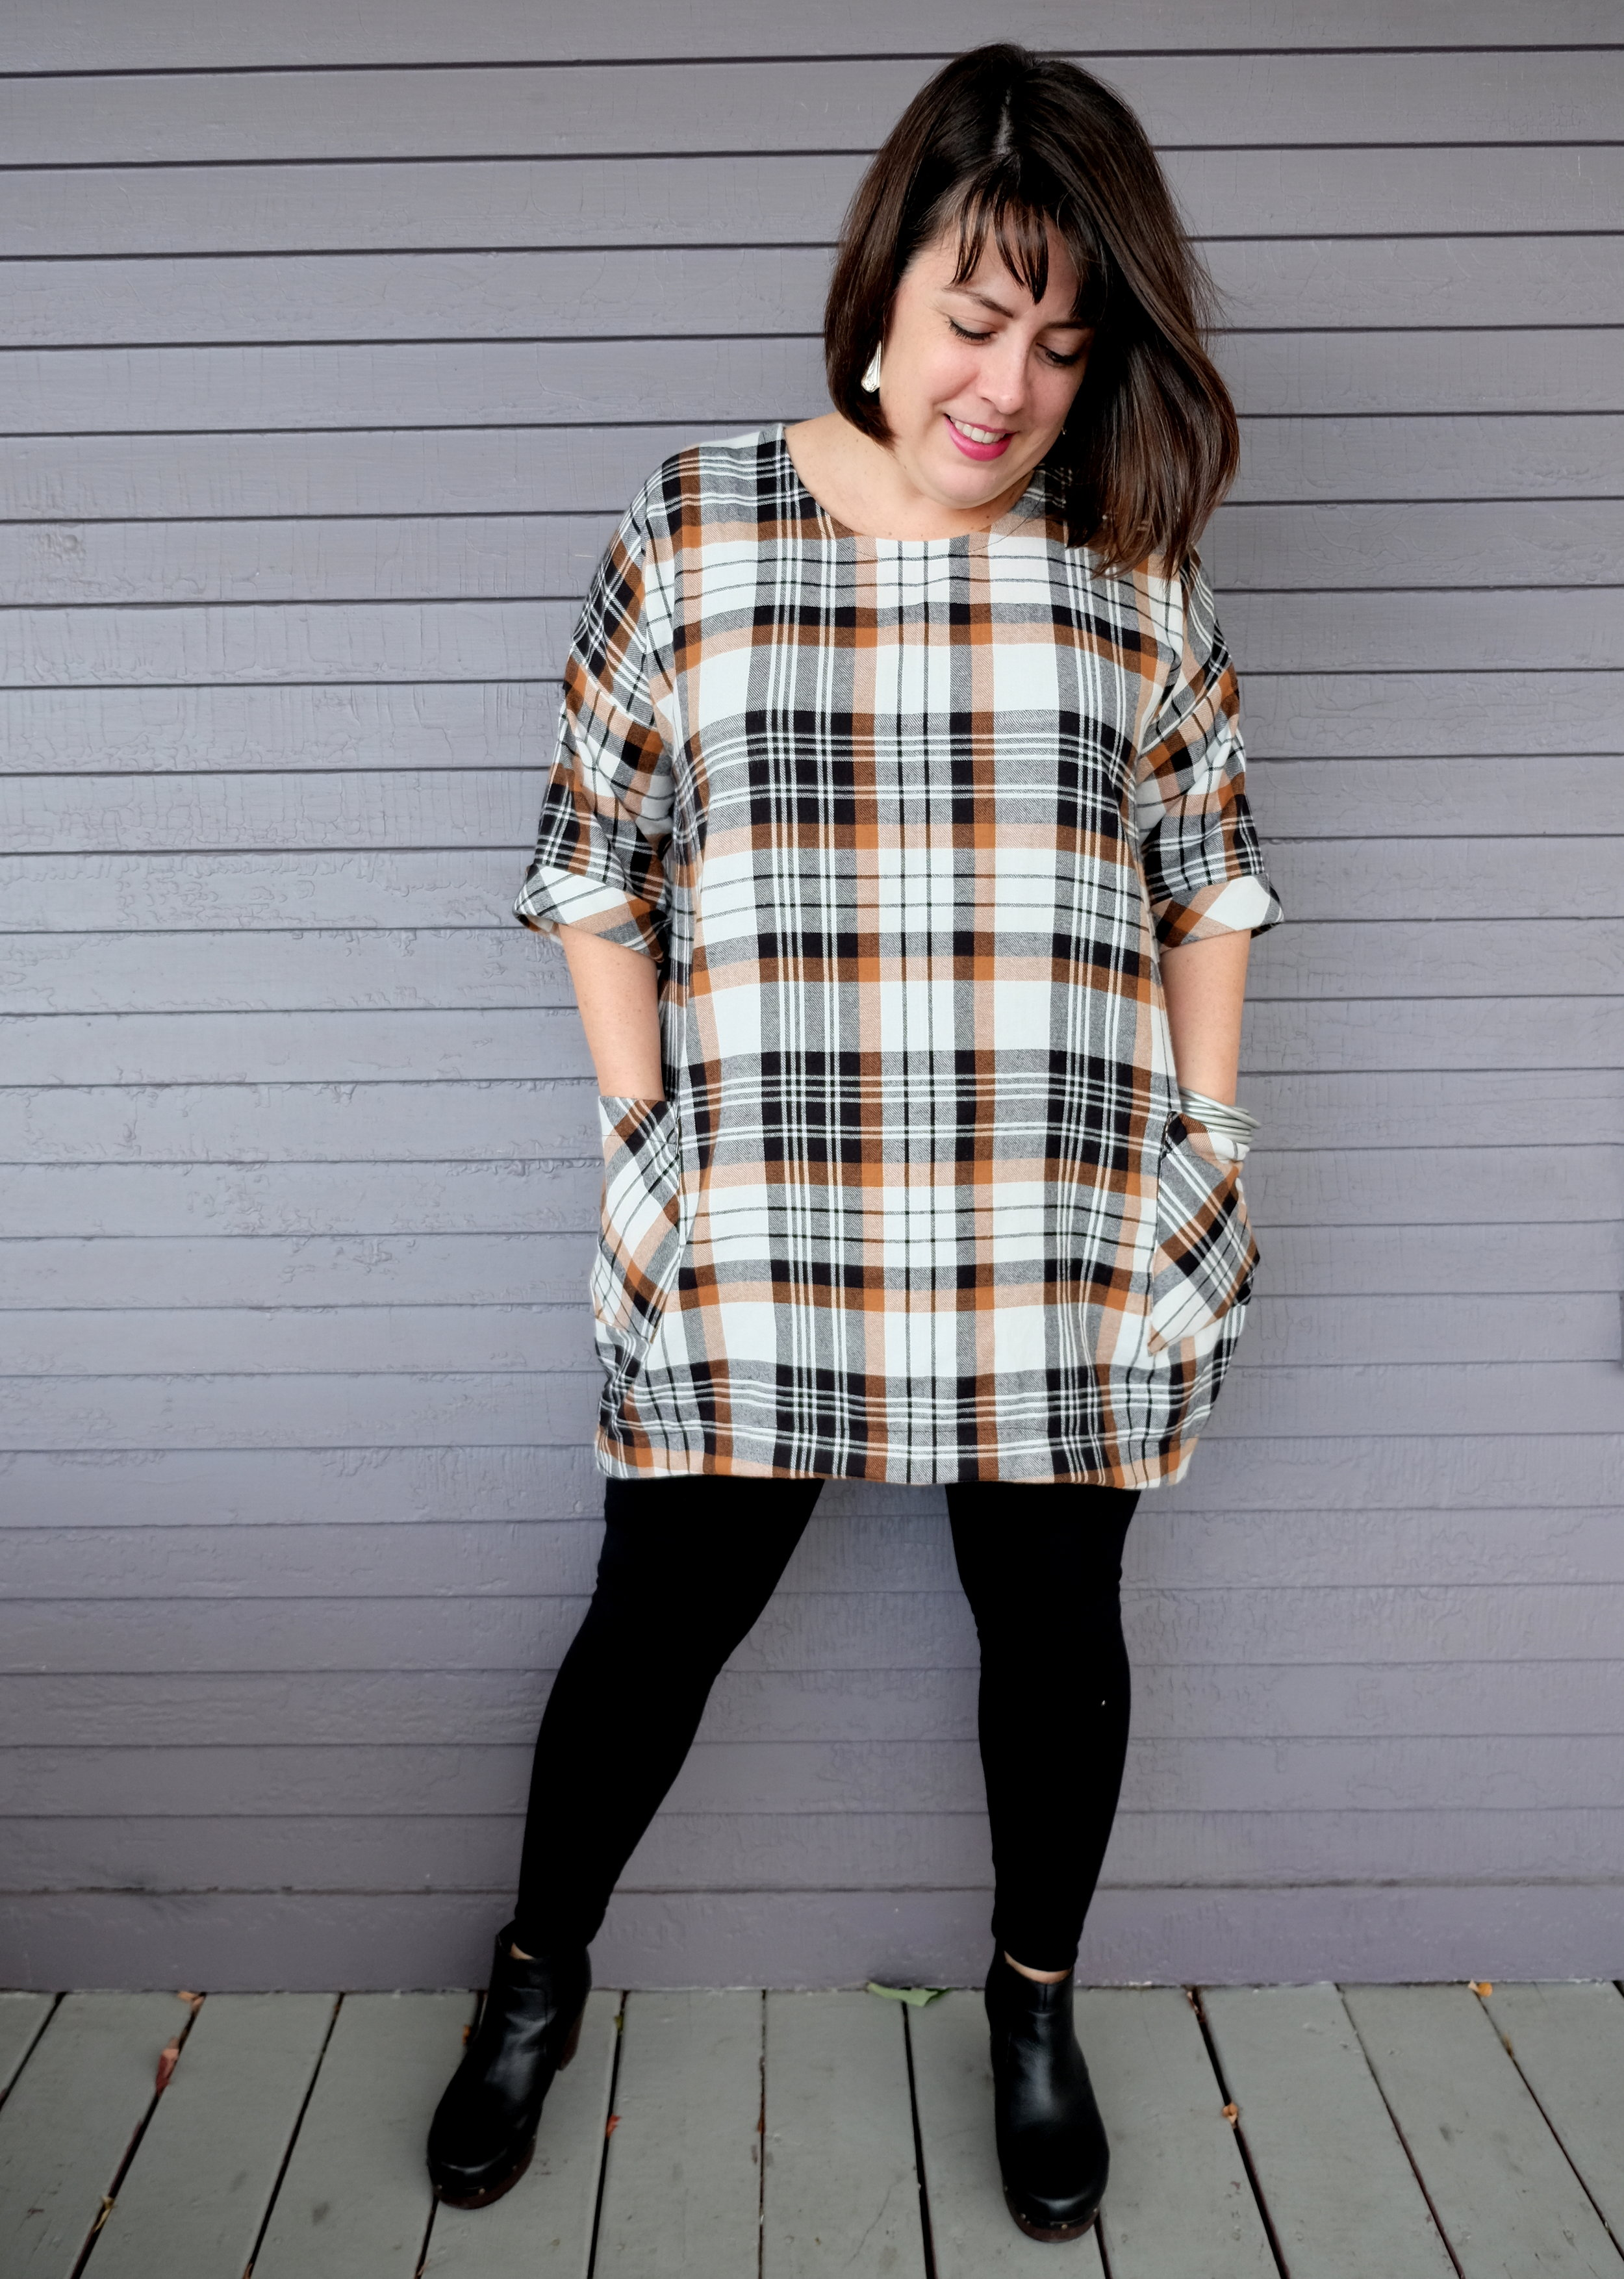 Meg of Cookin & Craftin in the Lou Box Dress 1